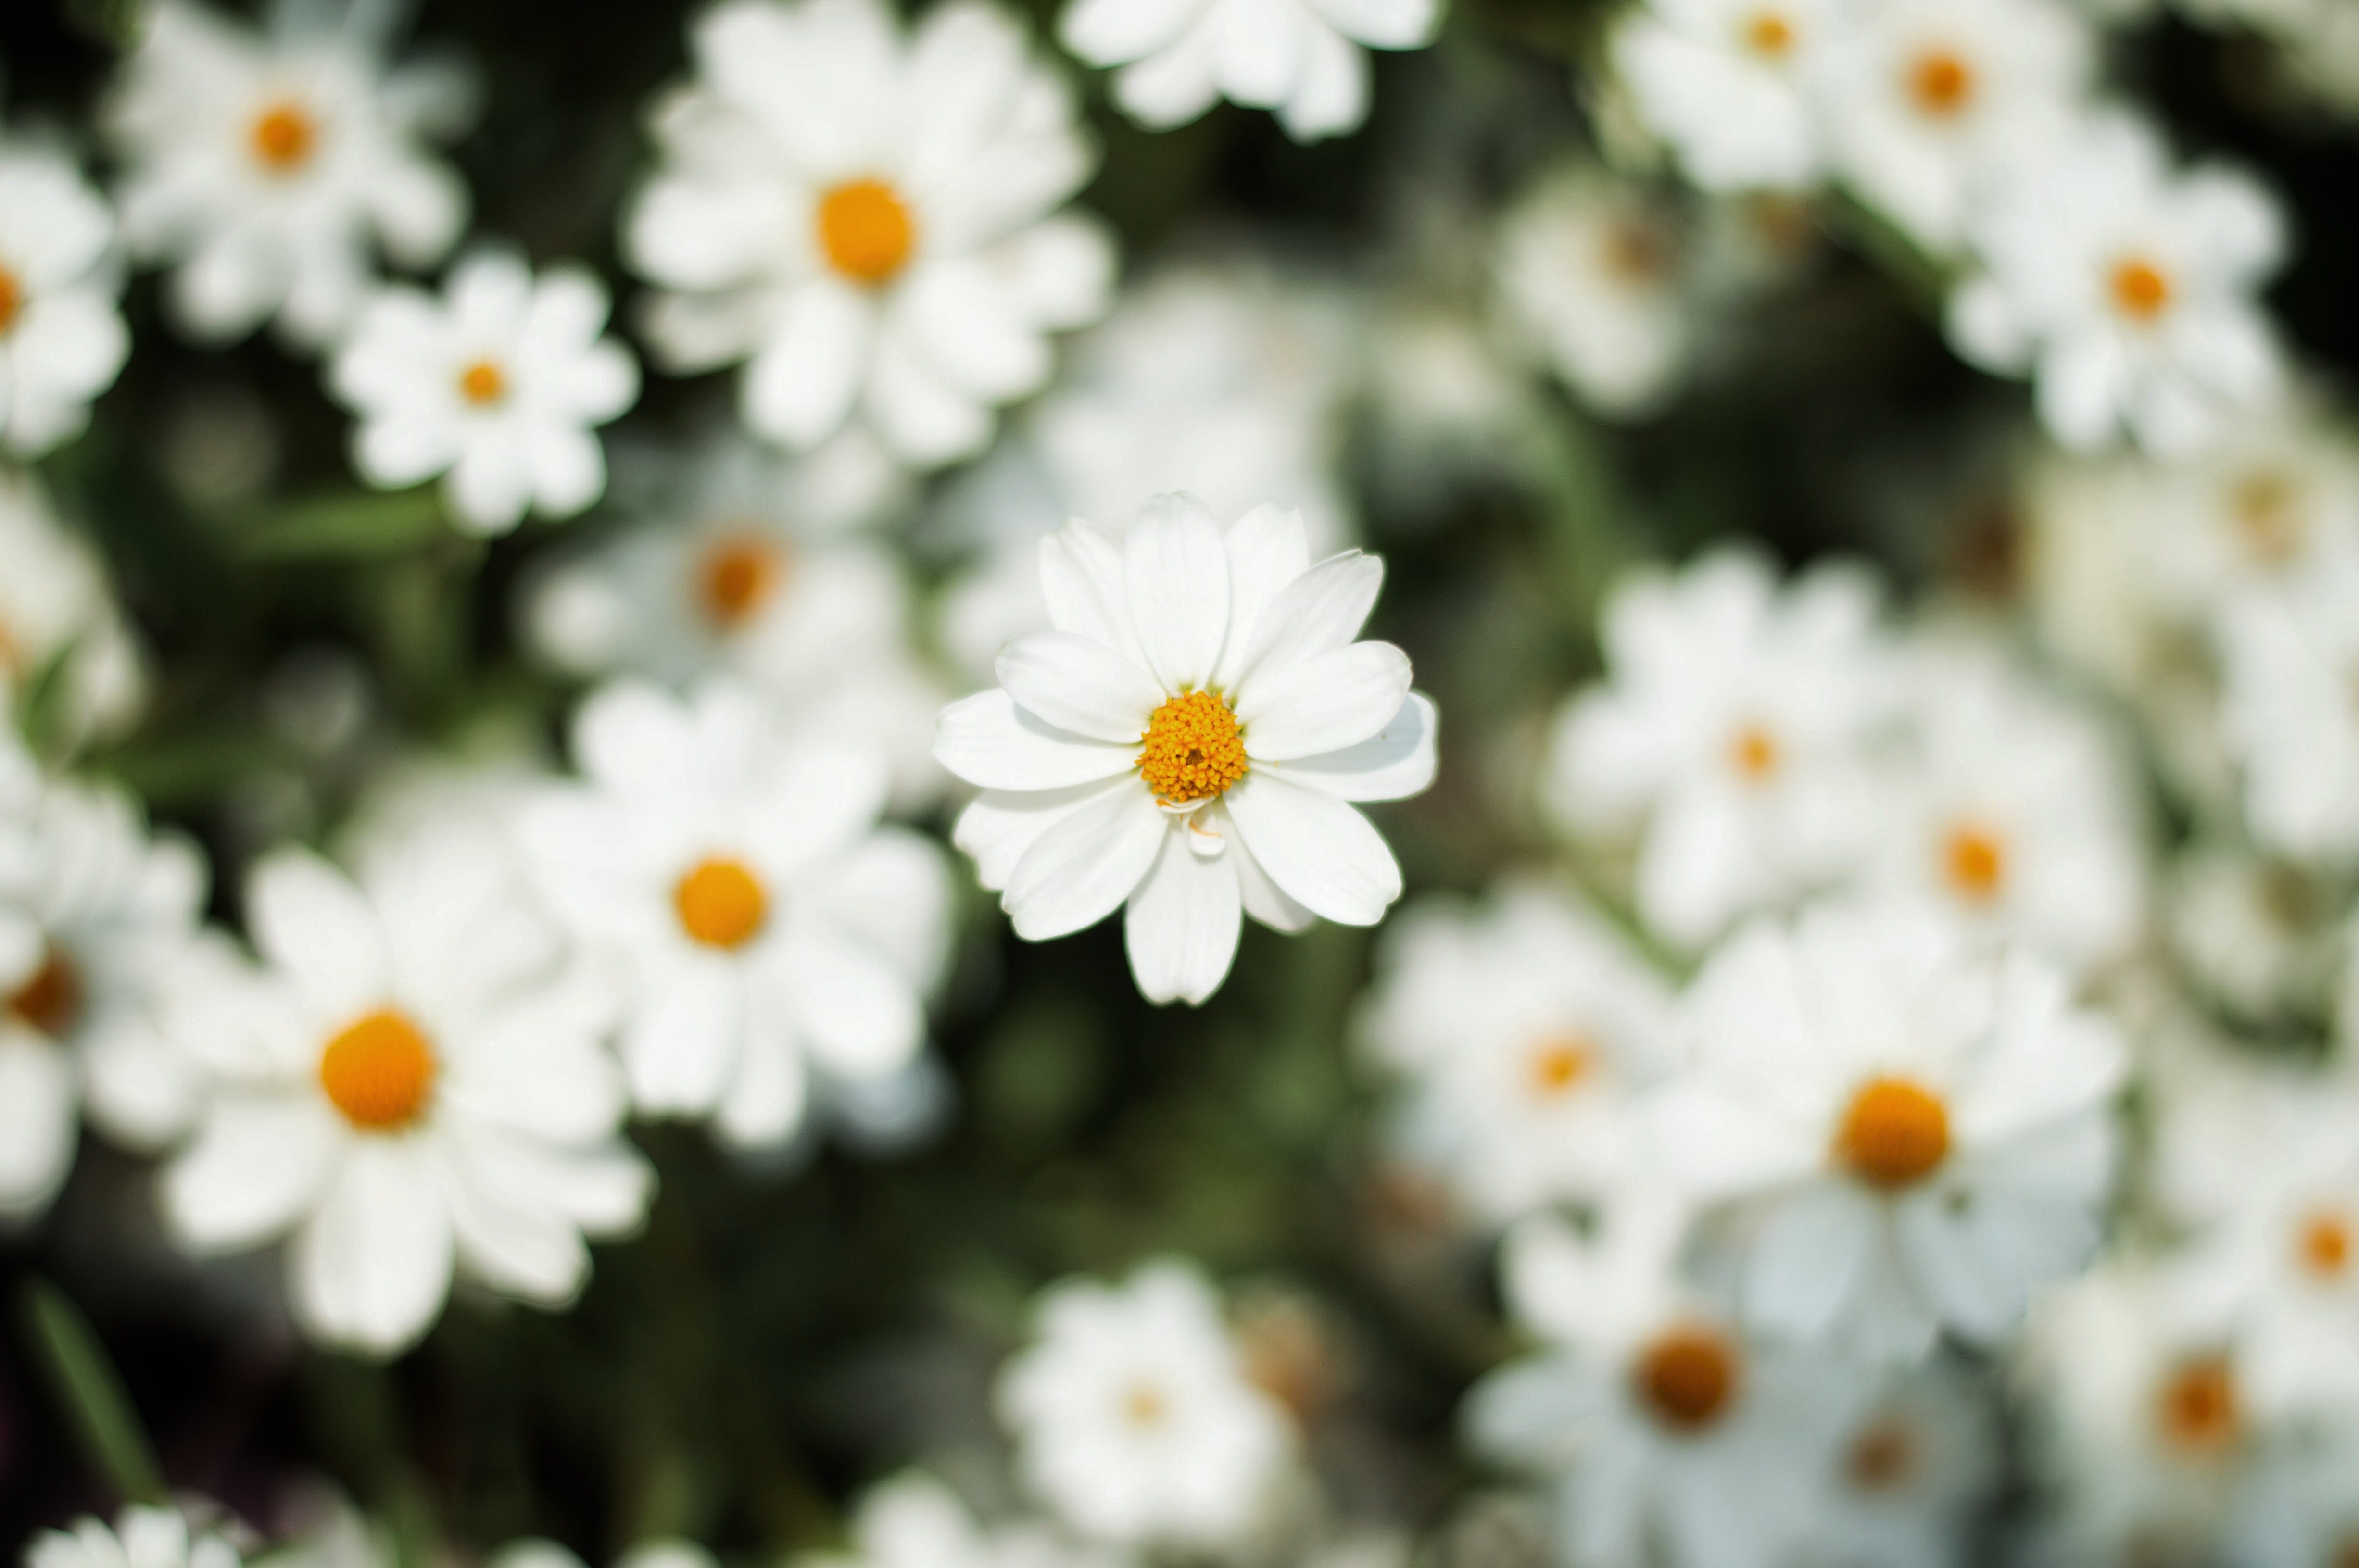 Close-Up Photography of White Daisy